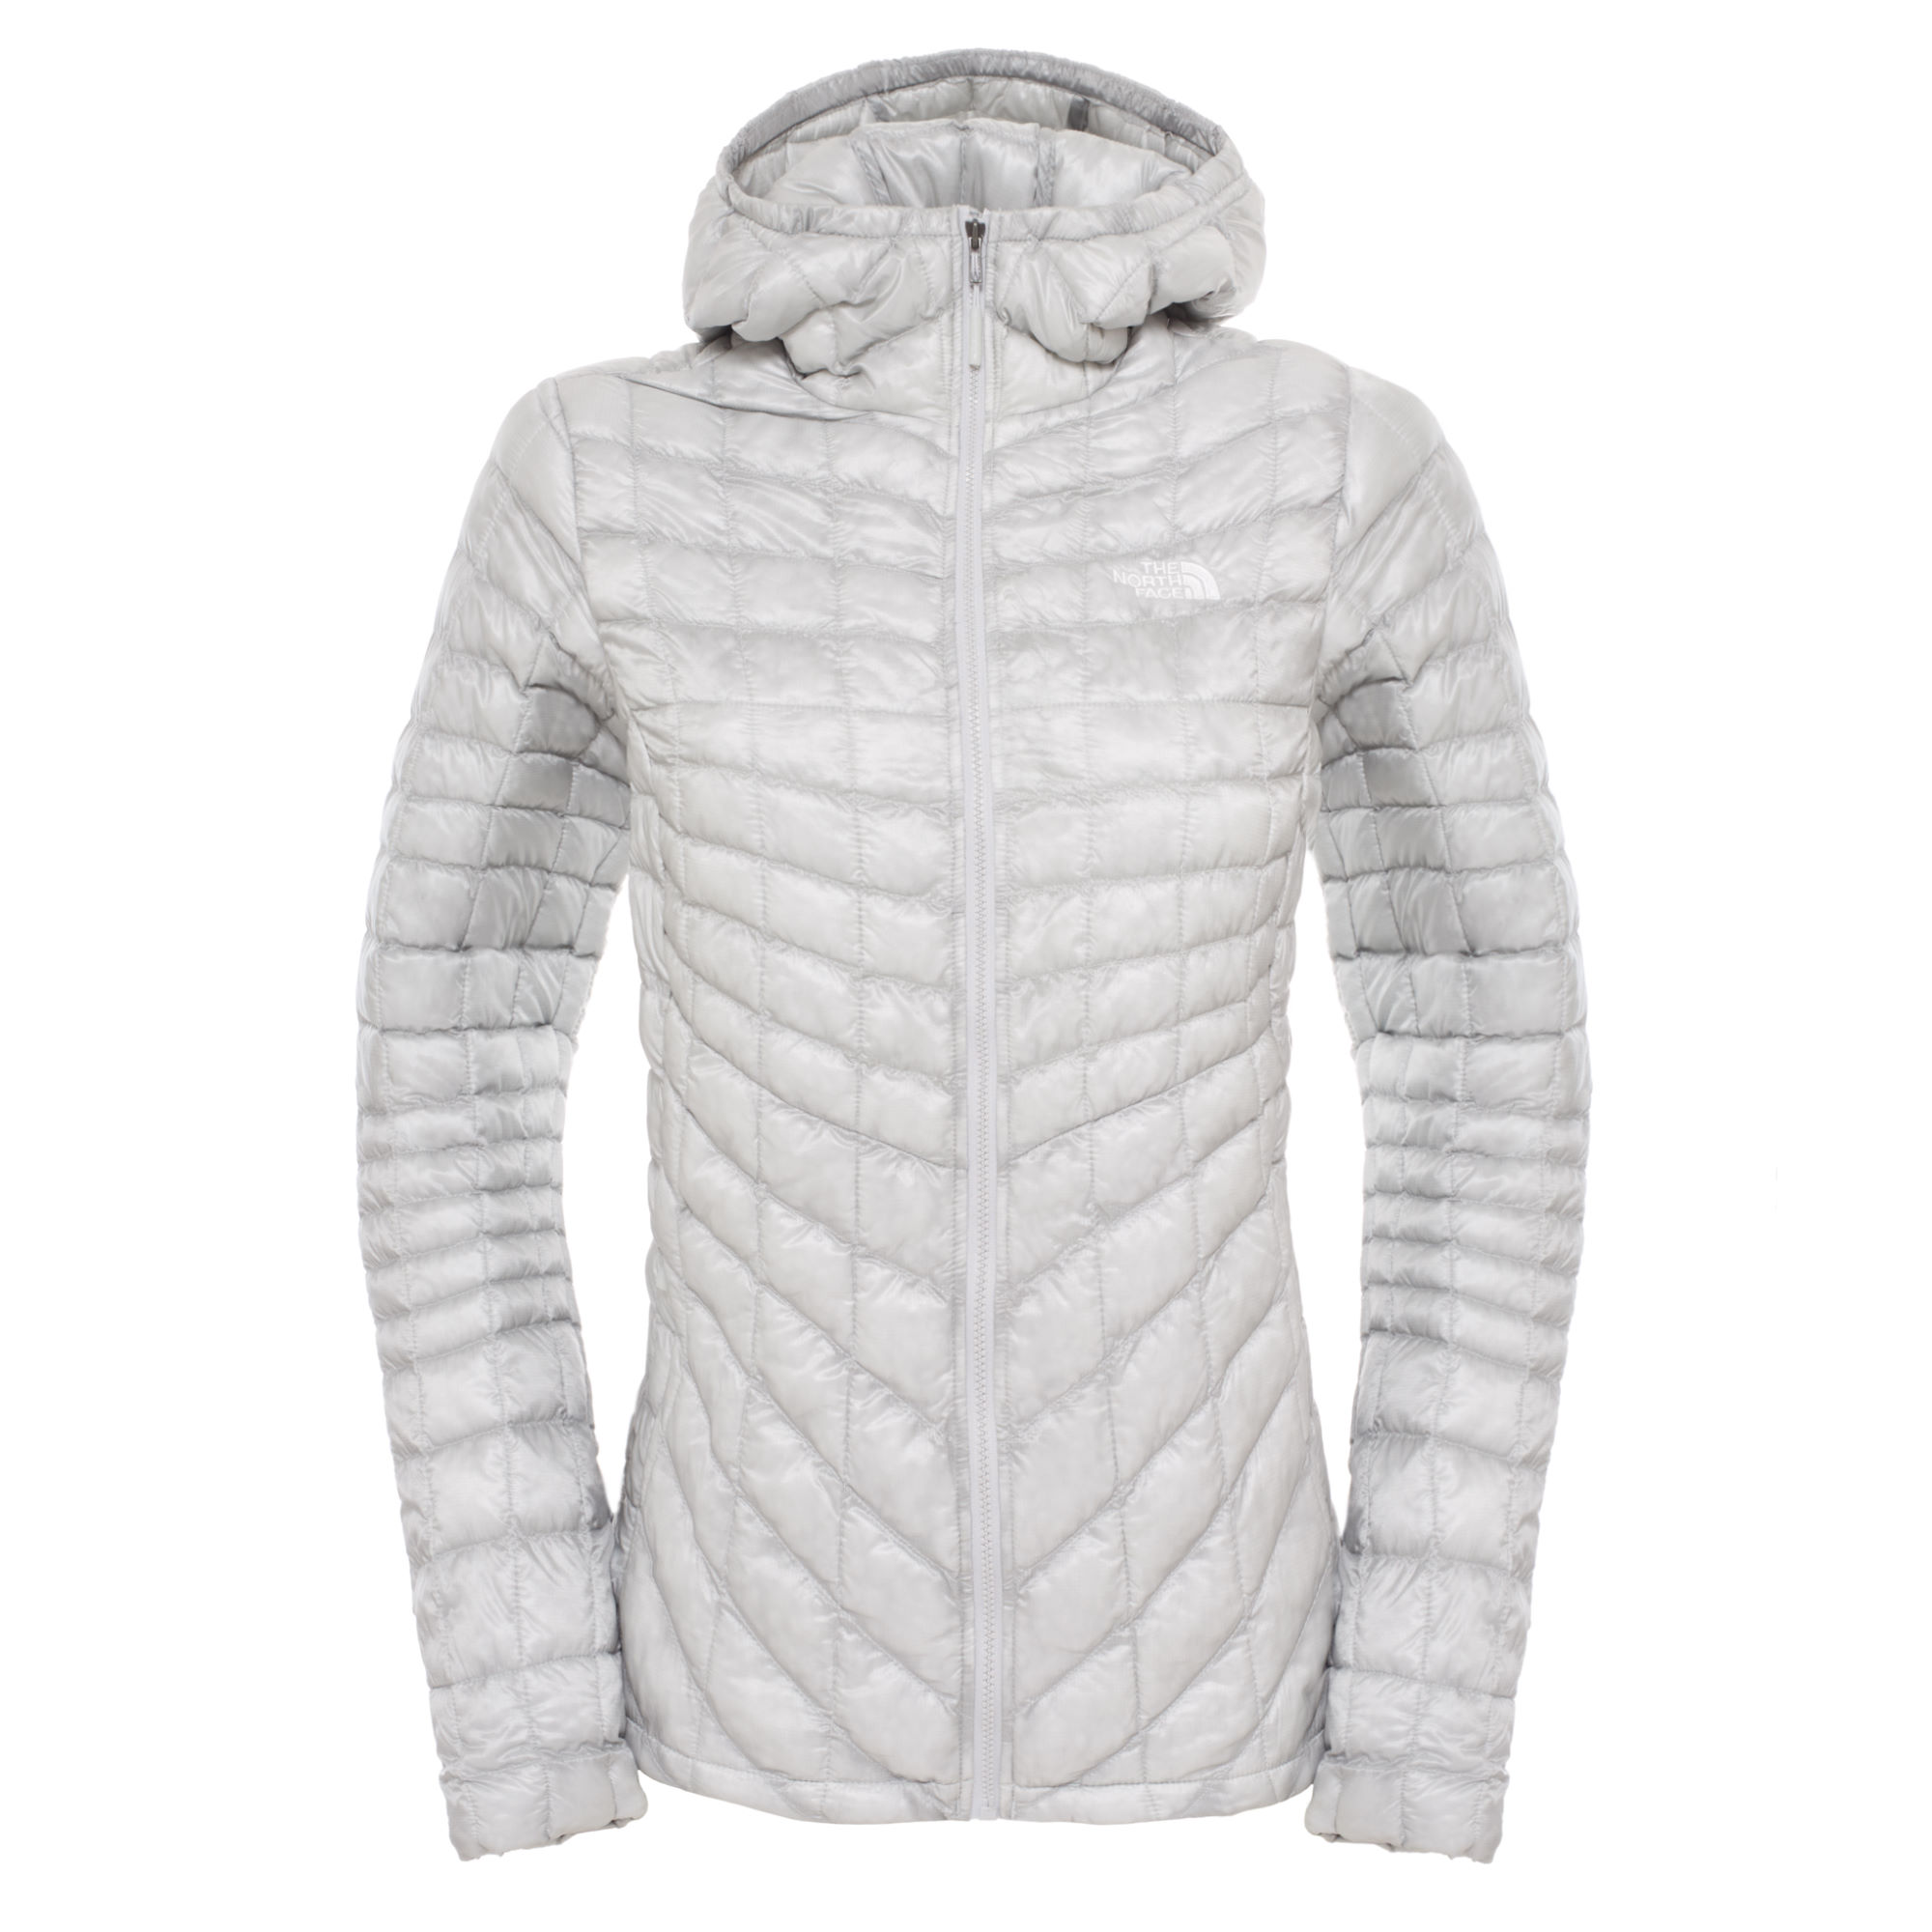 White womens north face jacket